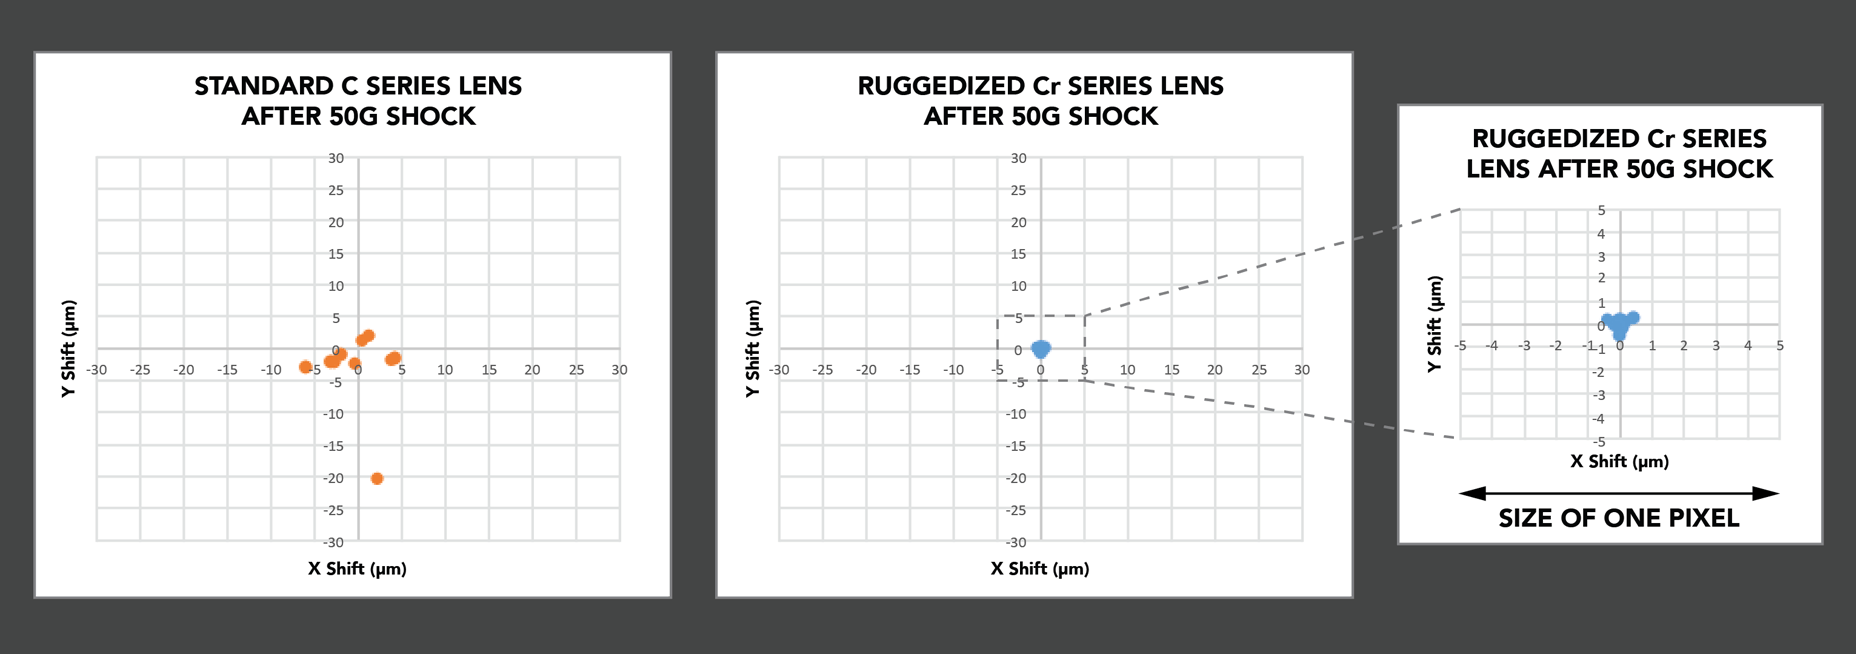 comparison of pixel shift after 50G shock